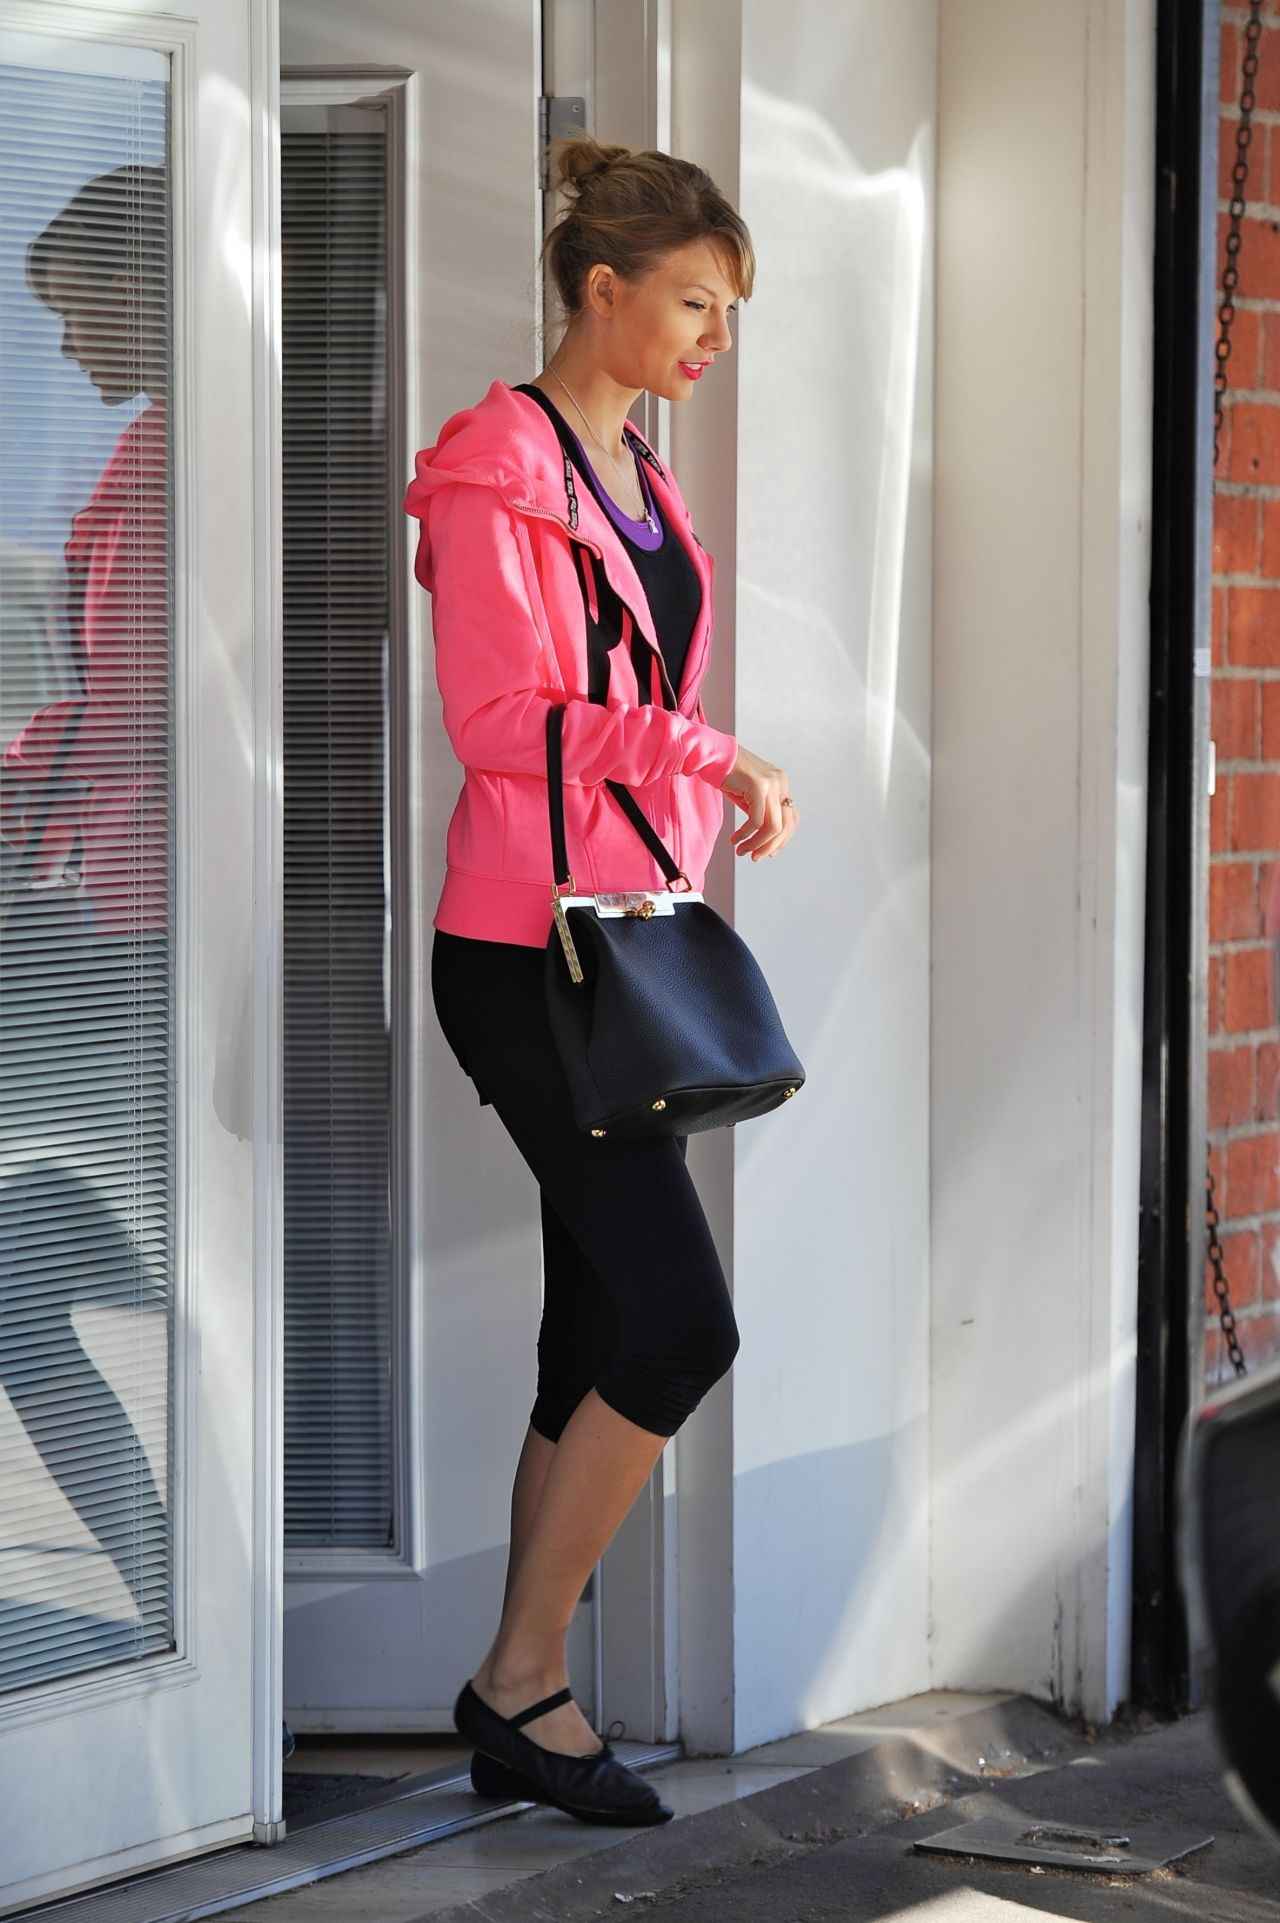 Taylor Swift - Dance Studio in Los Angeles - January 15, 2014